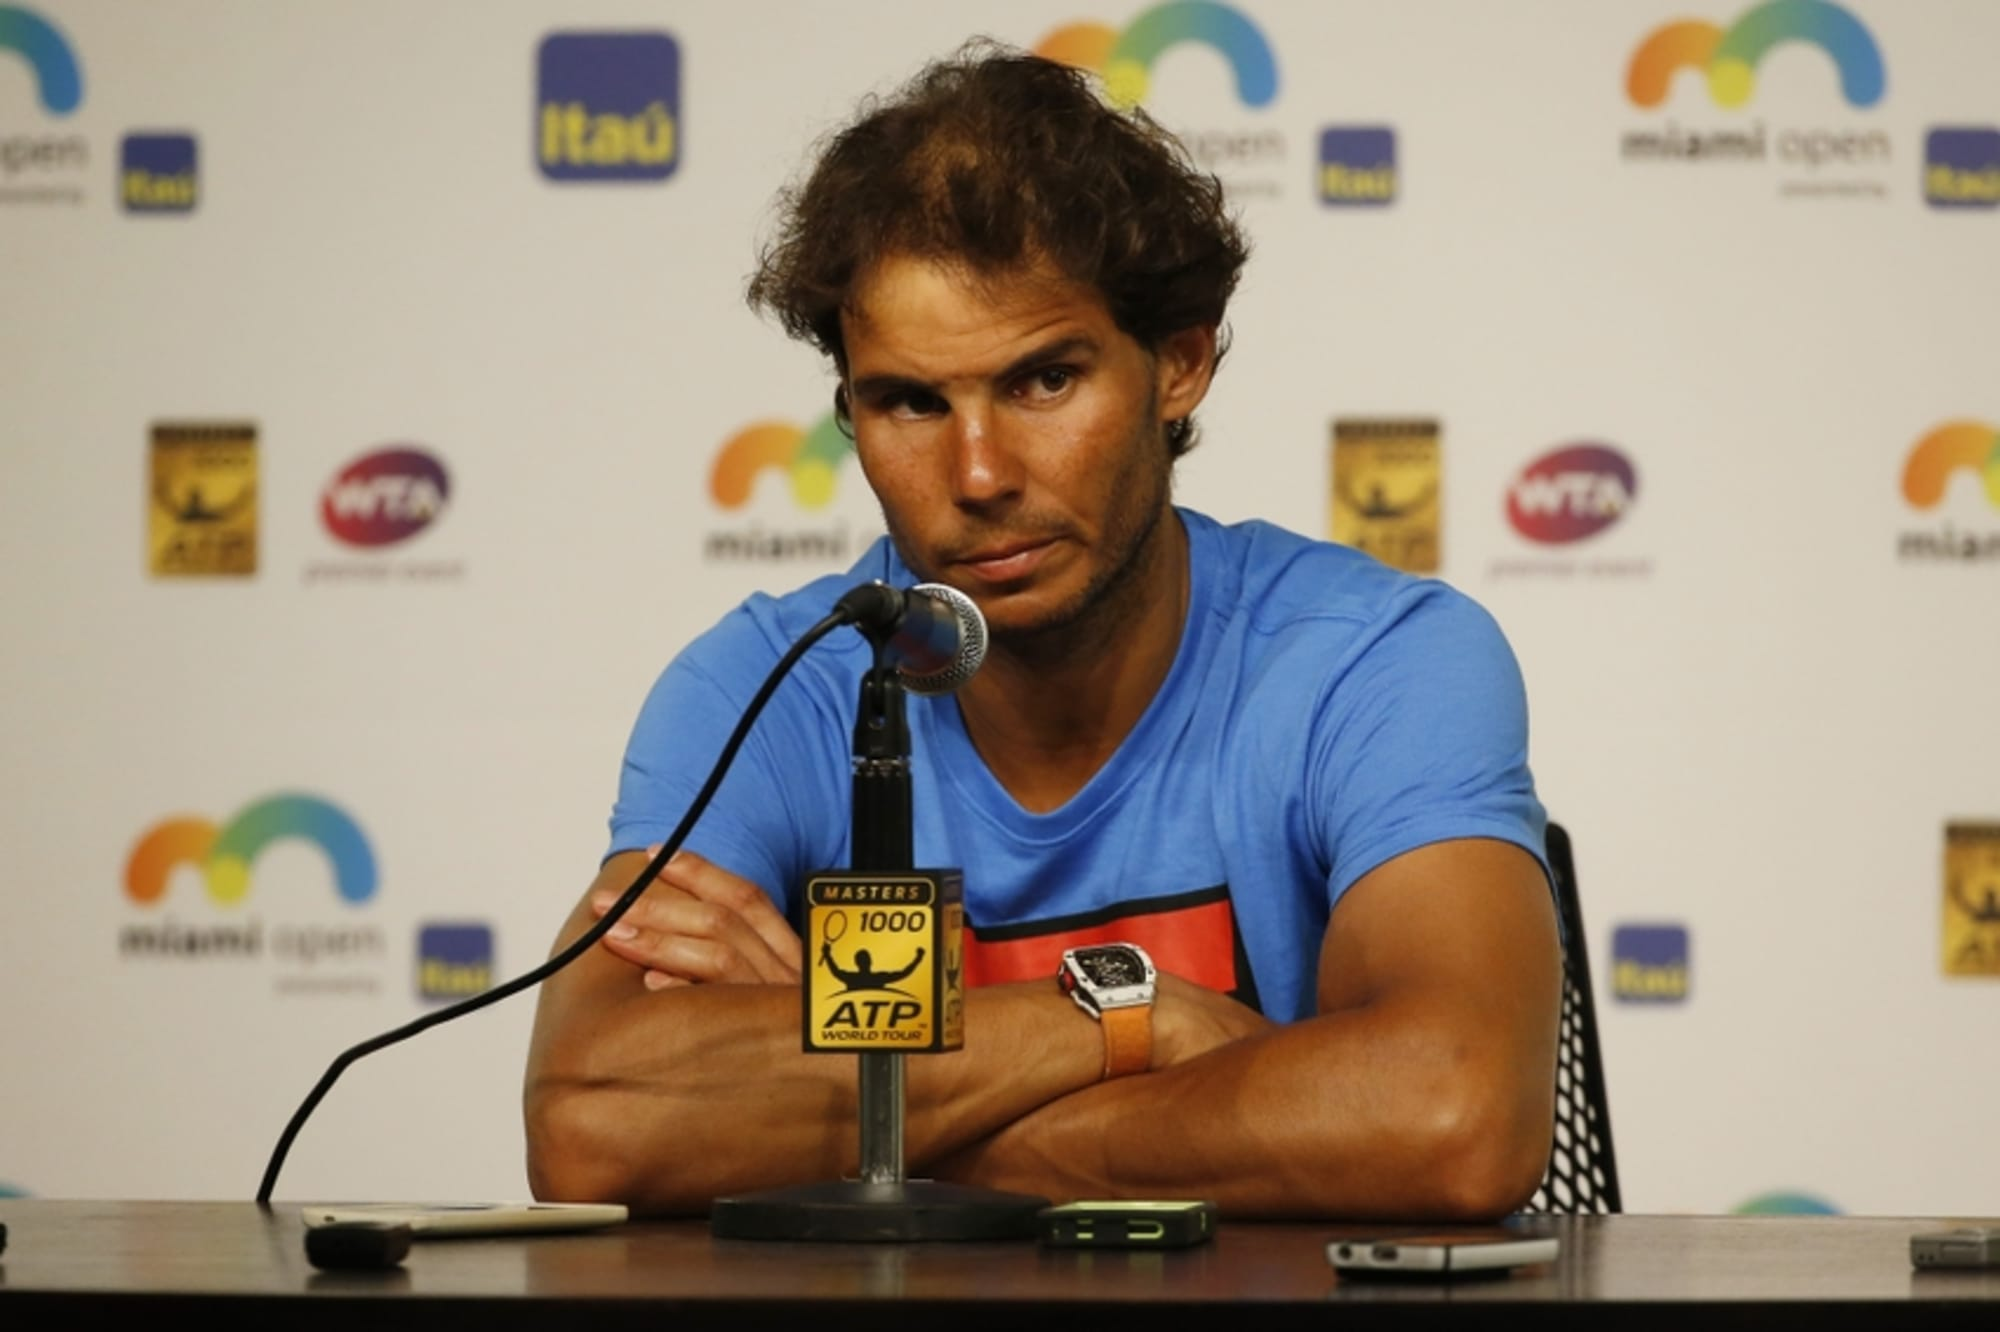 Rafael Nadal Withdraws from the French Open